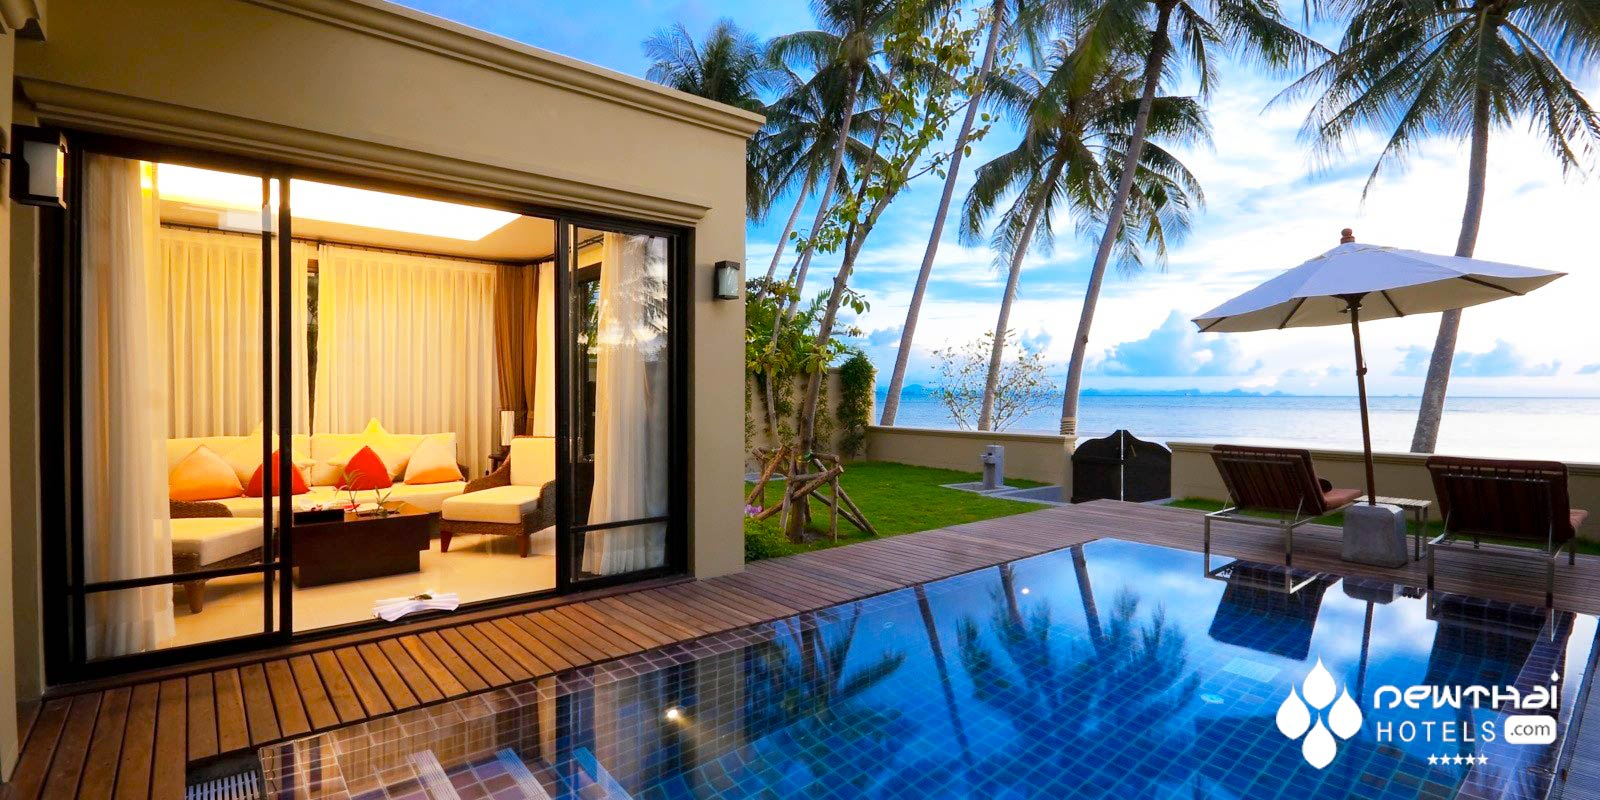 Pool villa at Mövenpick Resort Laem Yai Beach Samui,